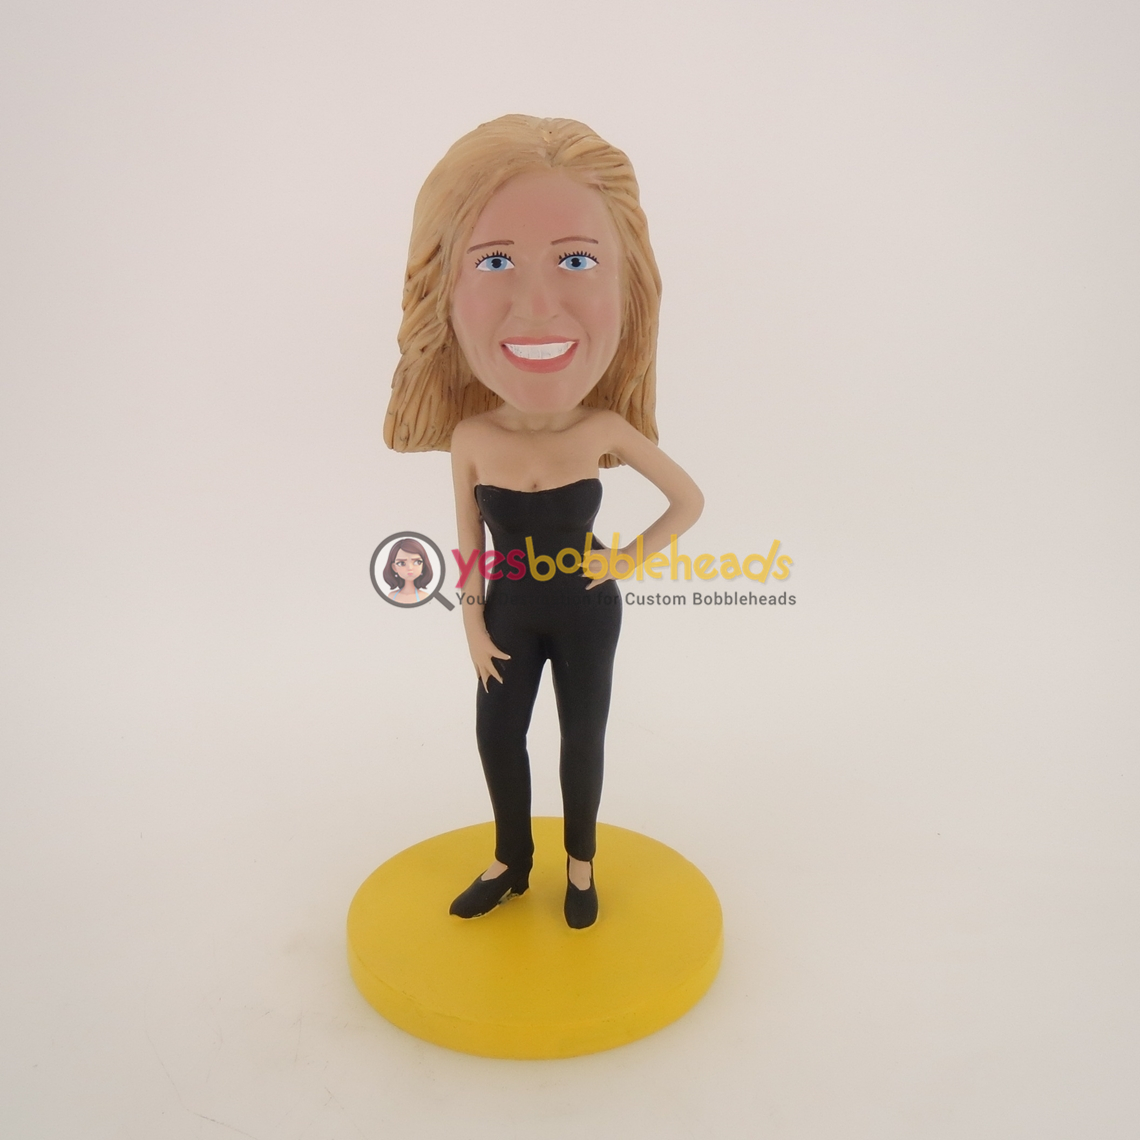 Picture of Custom Bobblehead Doll: Black Vest Girl